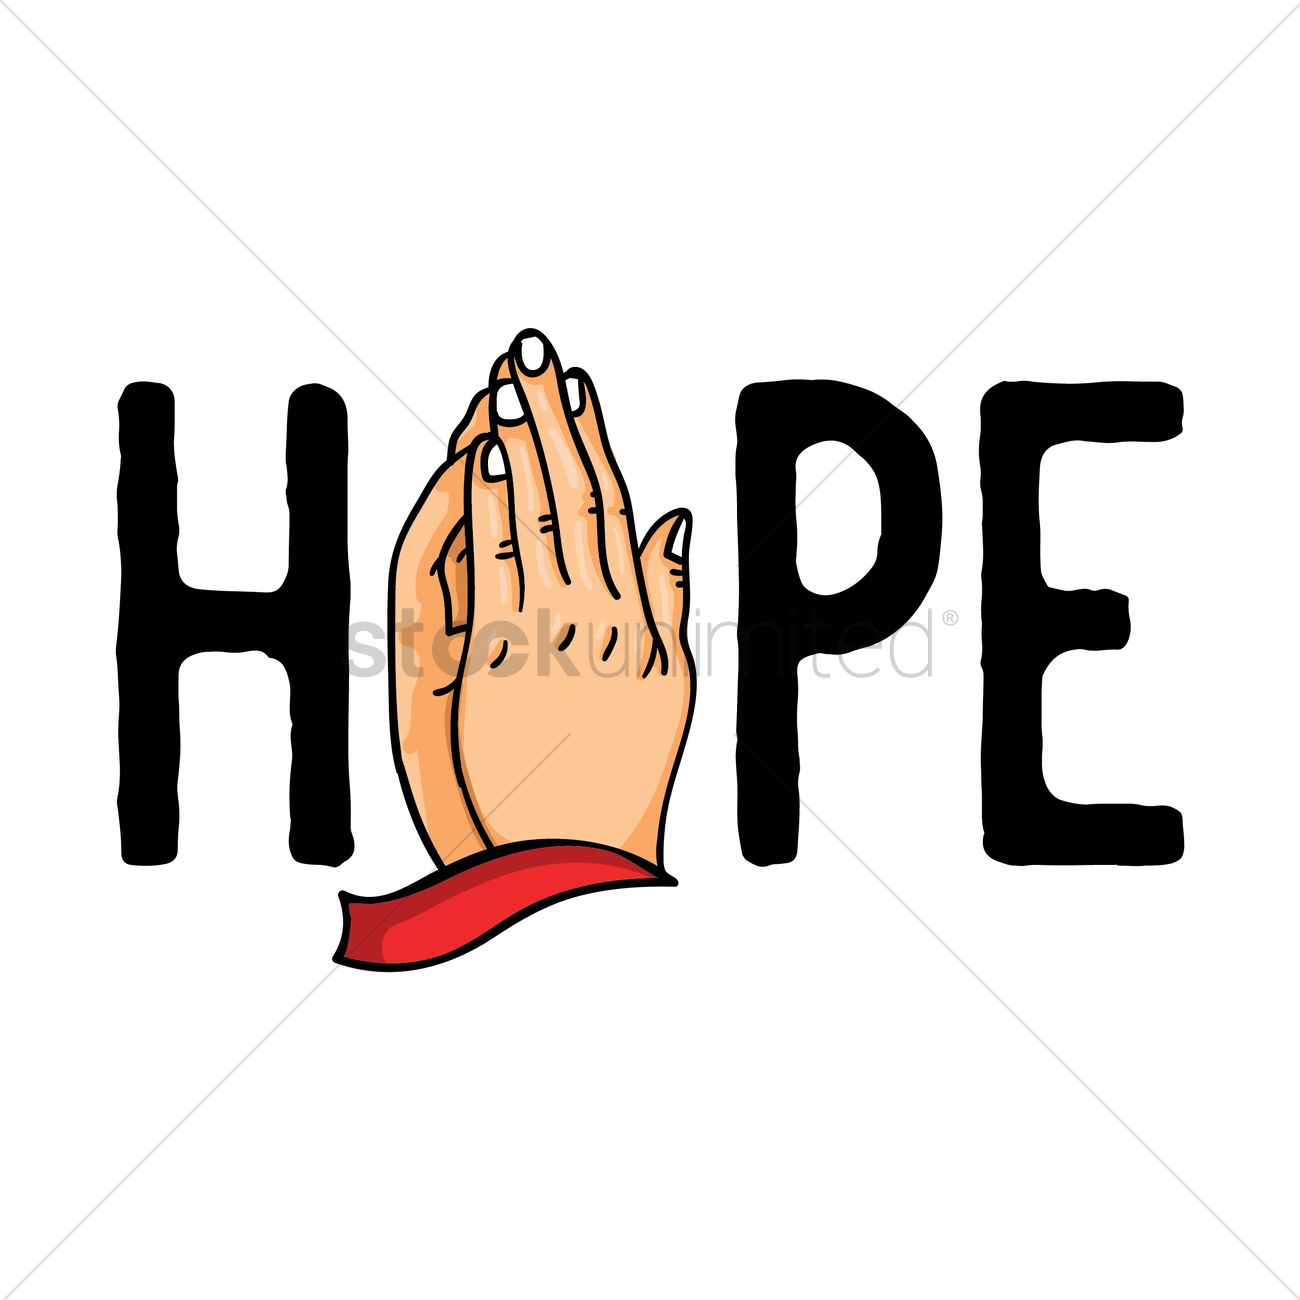 hope with hand praying vector image 1959031 stockunlimited rh stockunlimited com home clip art images free home clip art images free